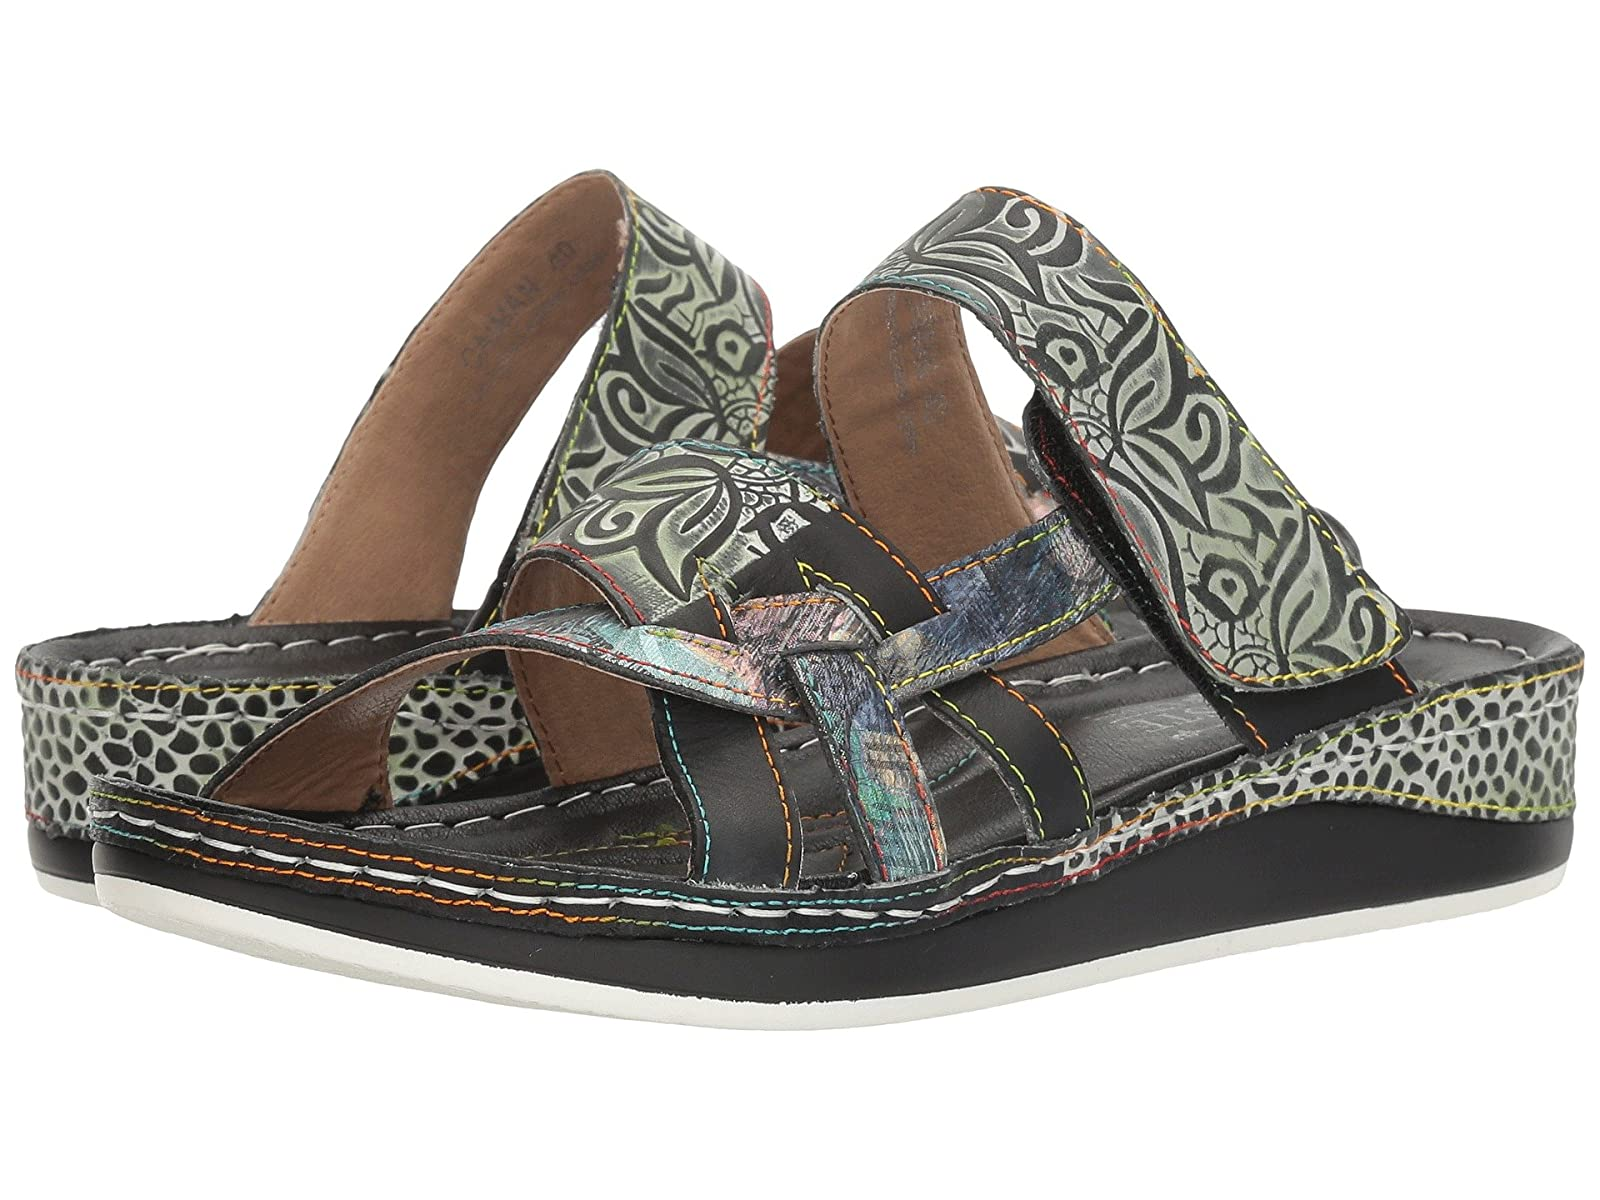 L'Artiste by Spring Step CaimanAtmospheric grades have affordable shoes